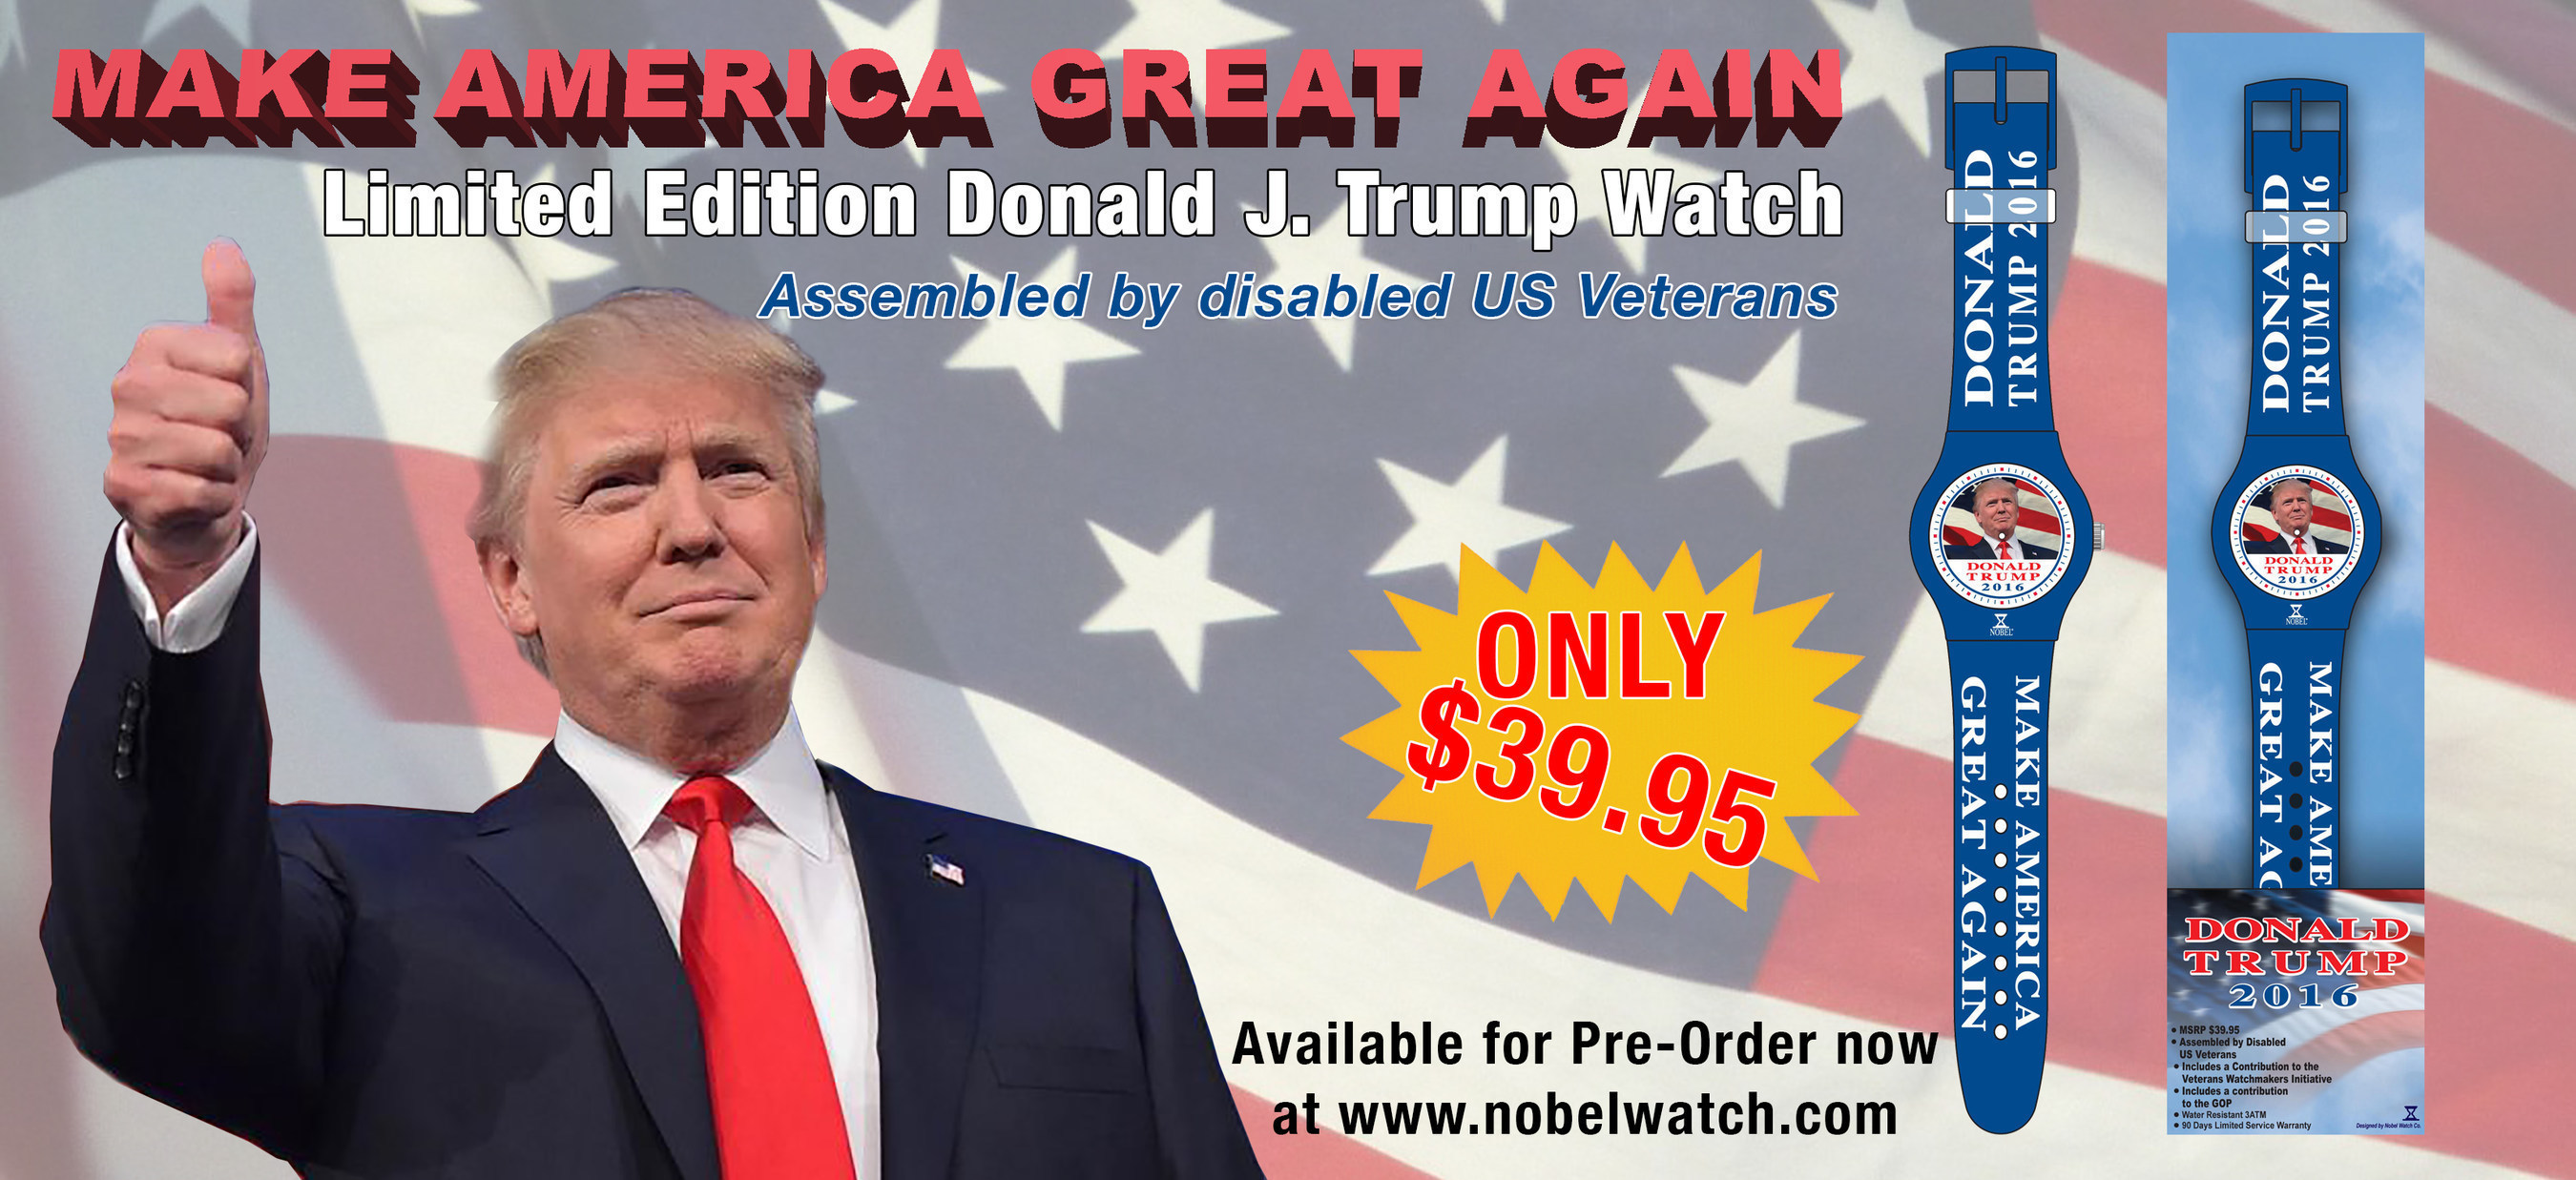 "The Nobel(R) Watch Company Recently Launched a Limited Edition ""Donald Trump-Make America Great Again"" Watch"